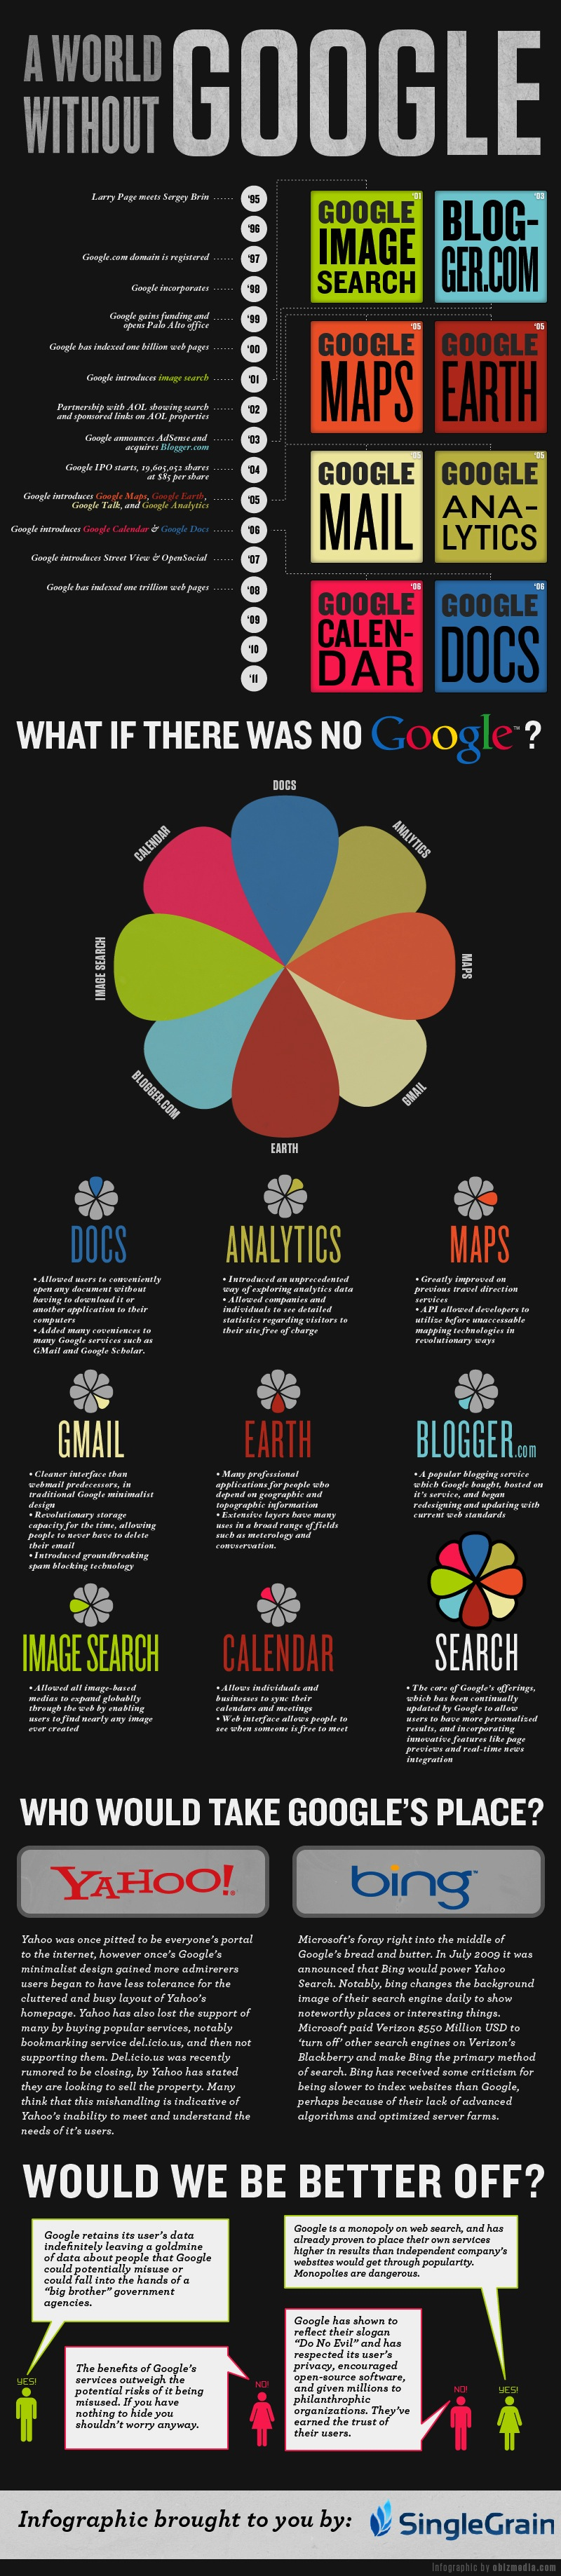 A-World-Without-Google-Infographic-1